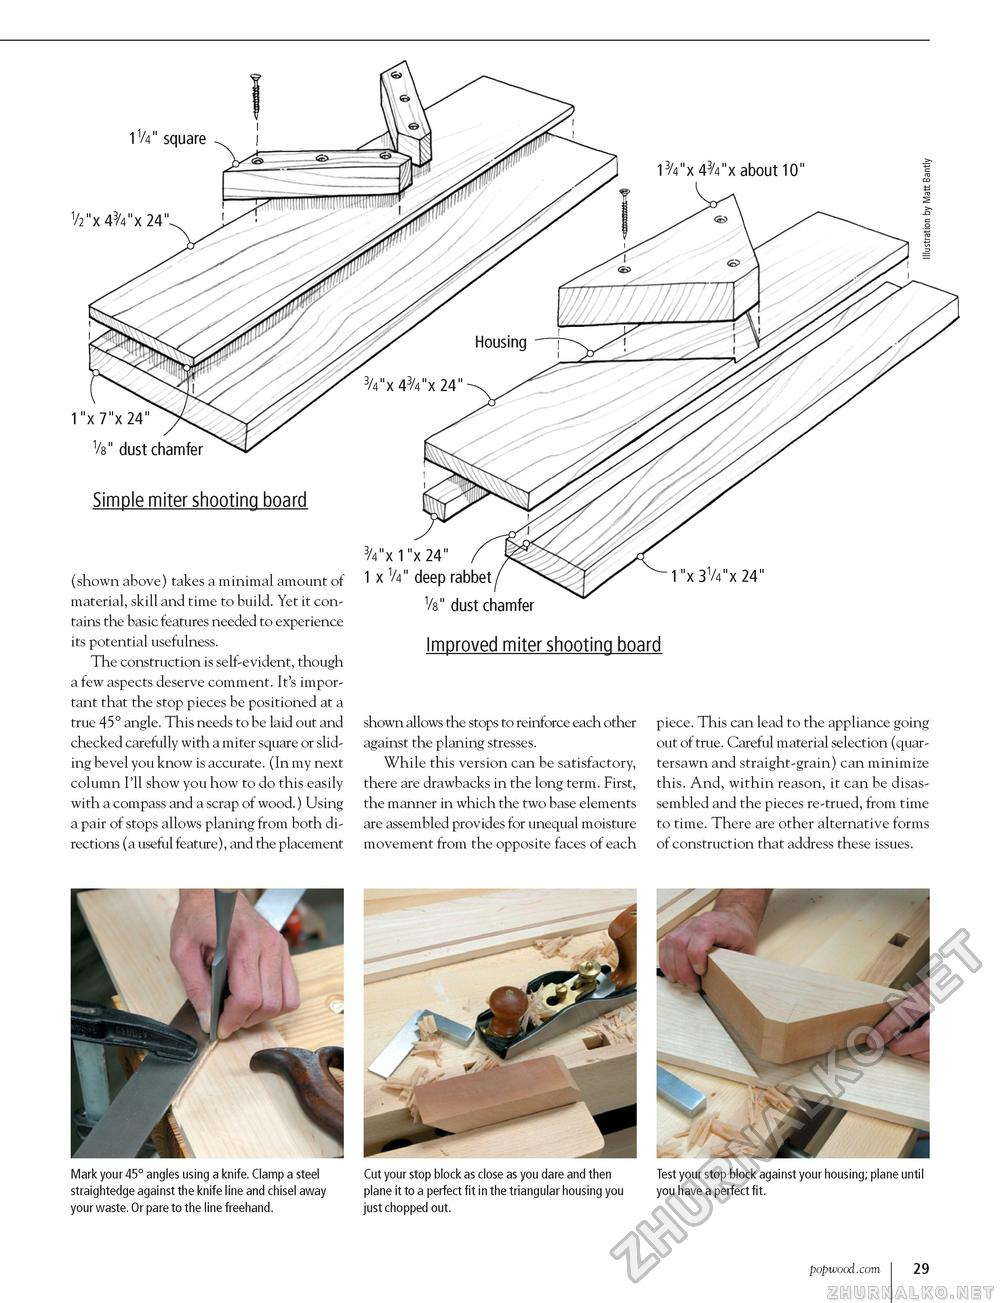 Popular Woodworking 2003-08 № 135, страница 31